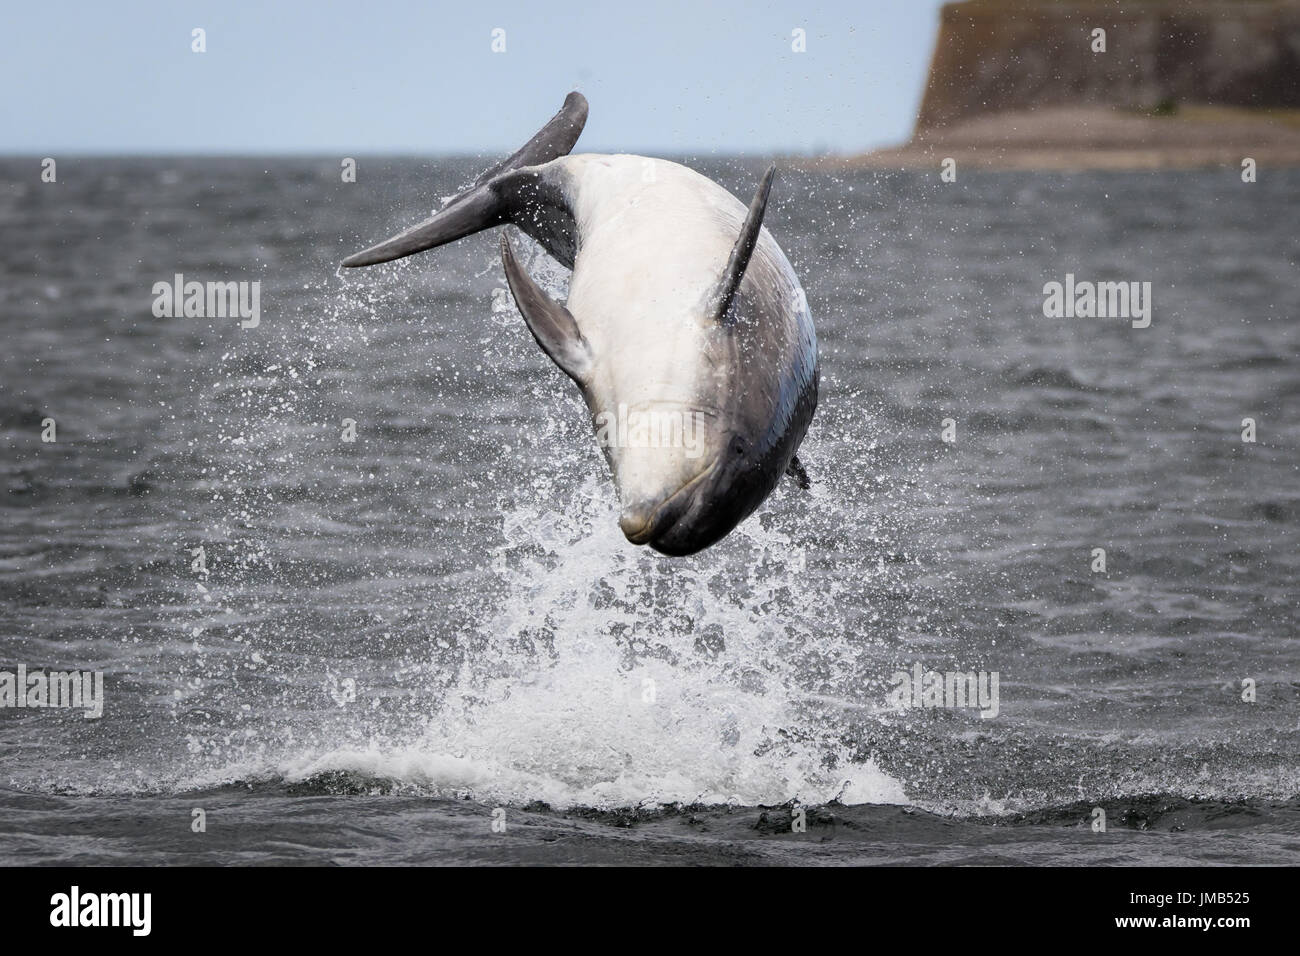 Dolphin backflip at Chanonry Point - Stock Image